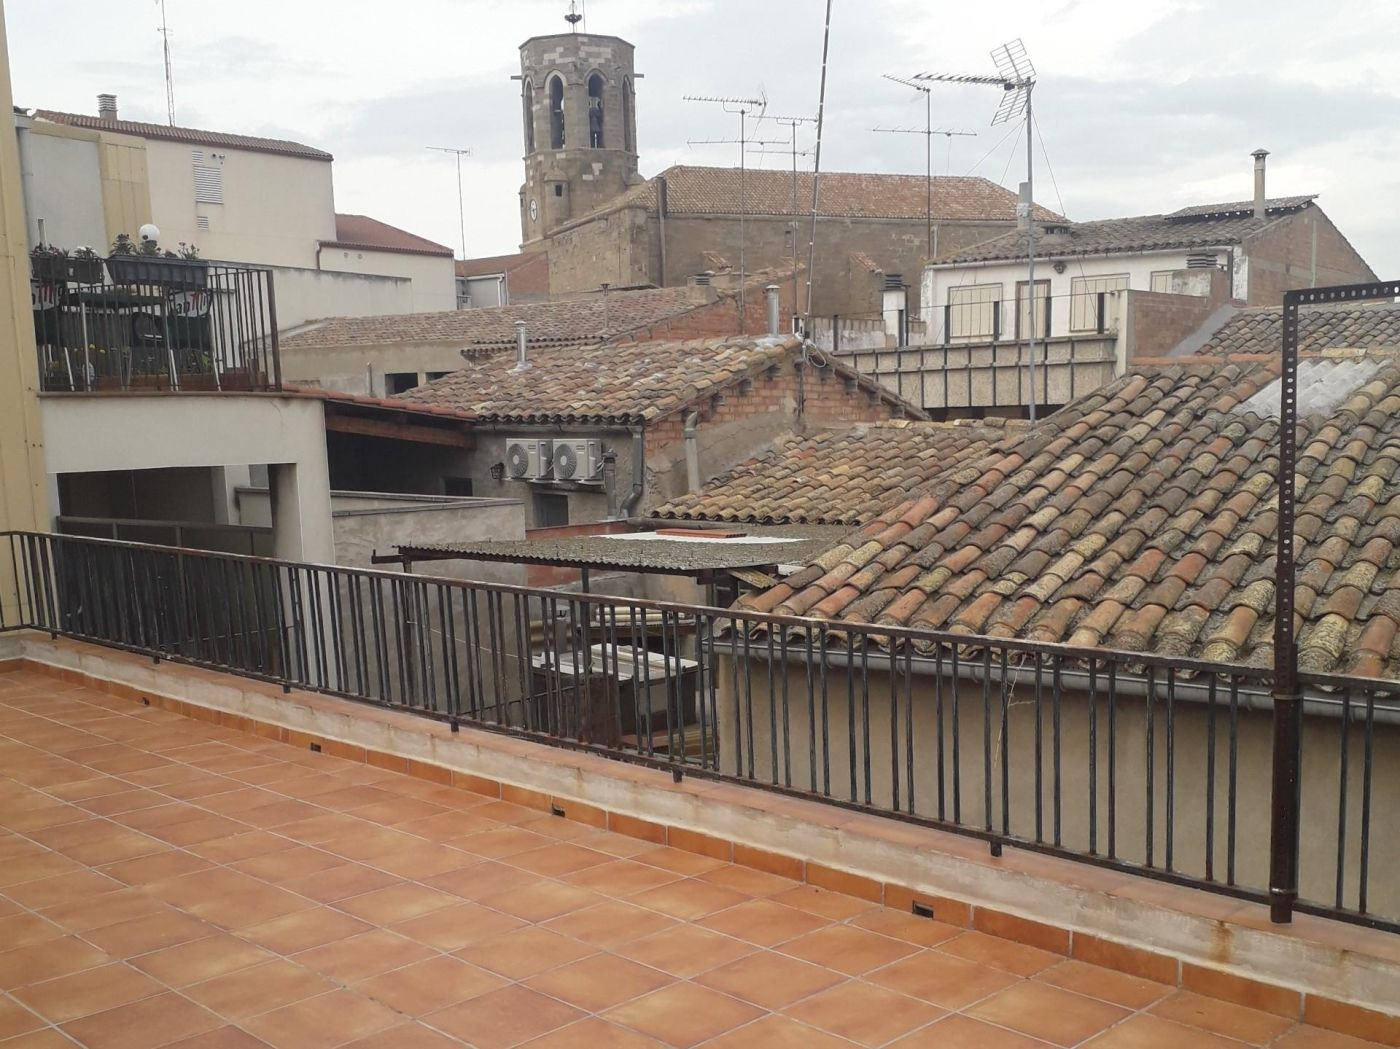 Semi detached house in Carrer castell, 23. Linyola / carrer castell